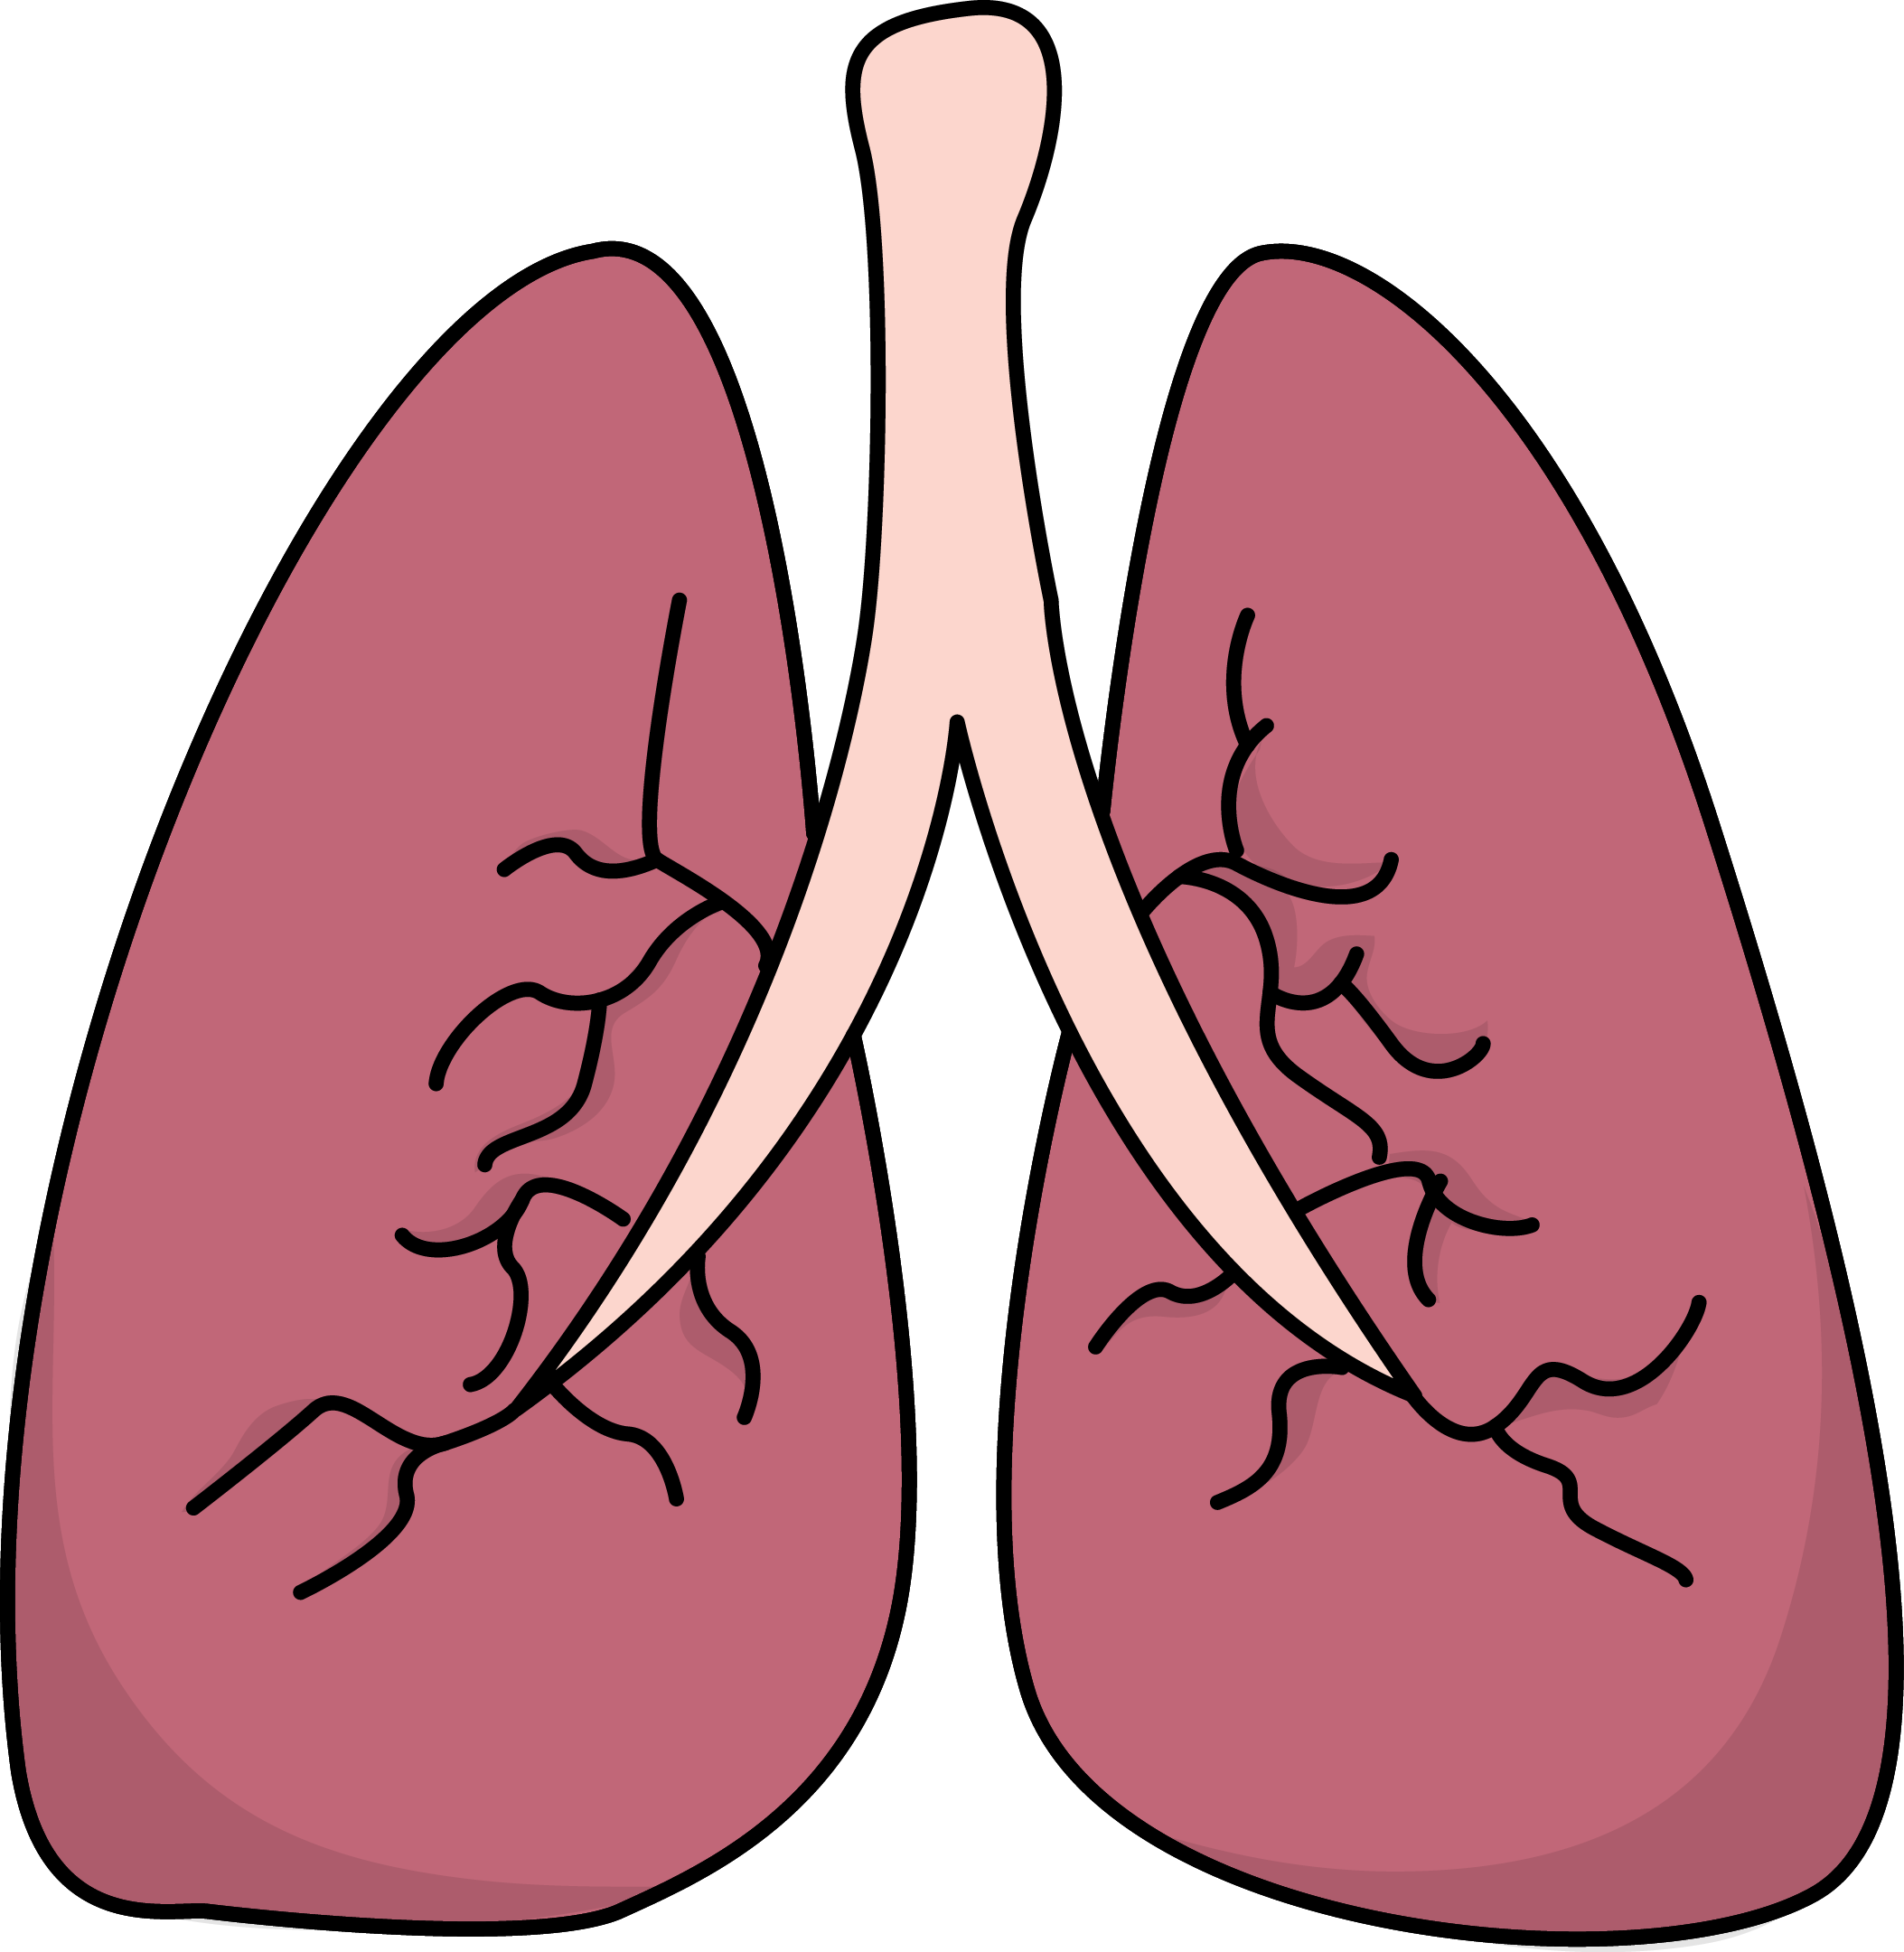 The Human Lung For Kids Clipart With Lab-The Human Lung For Kids Clipart With Labels - ClipArt Best-4